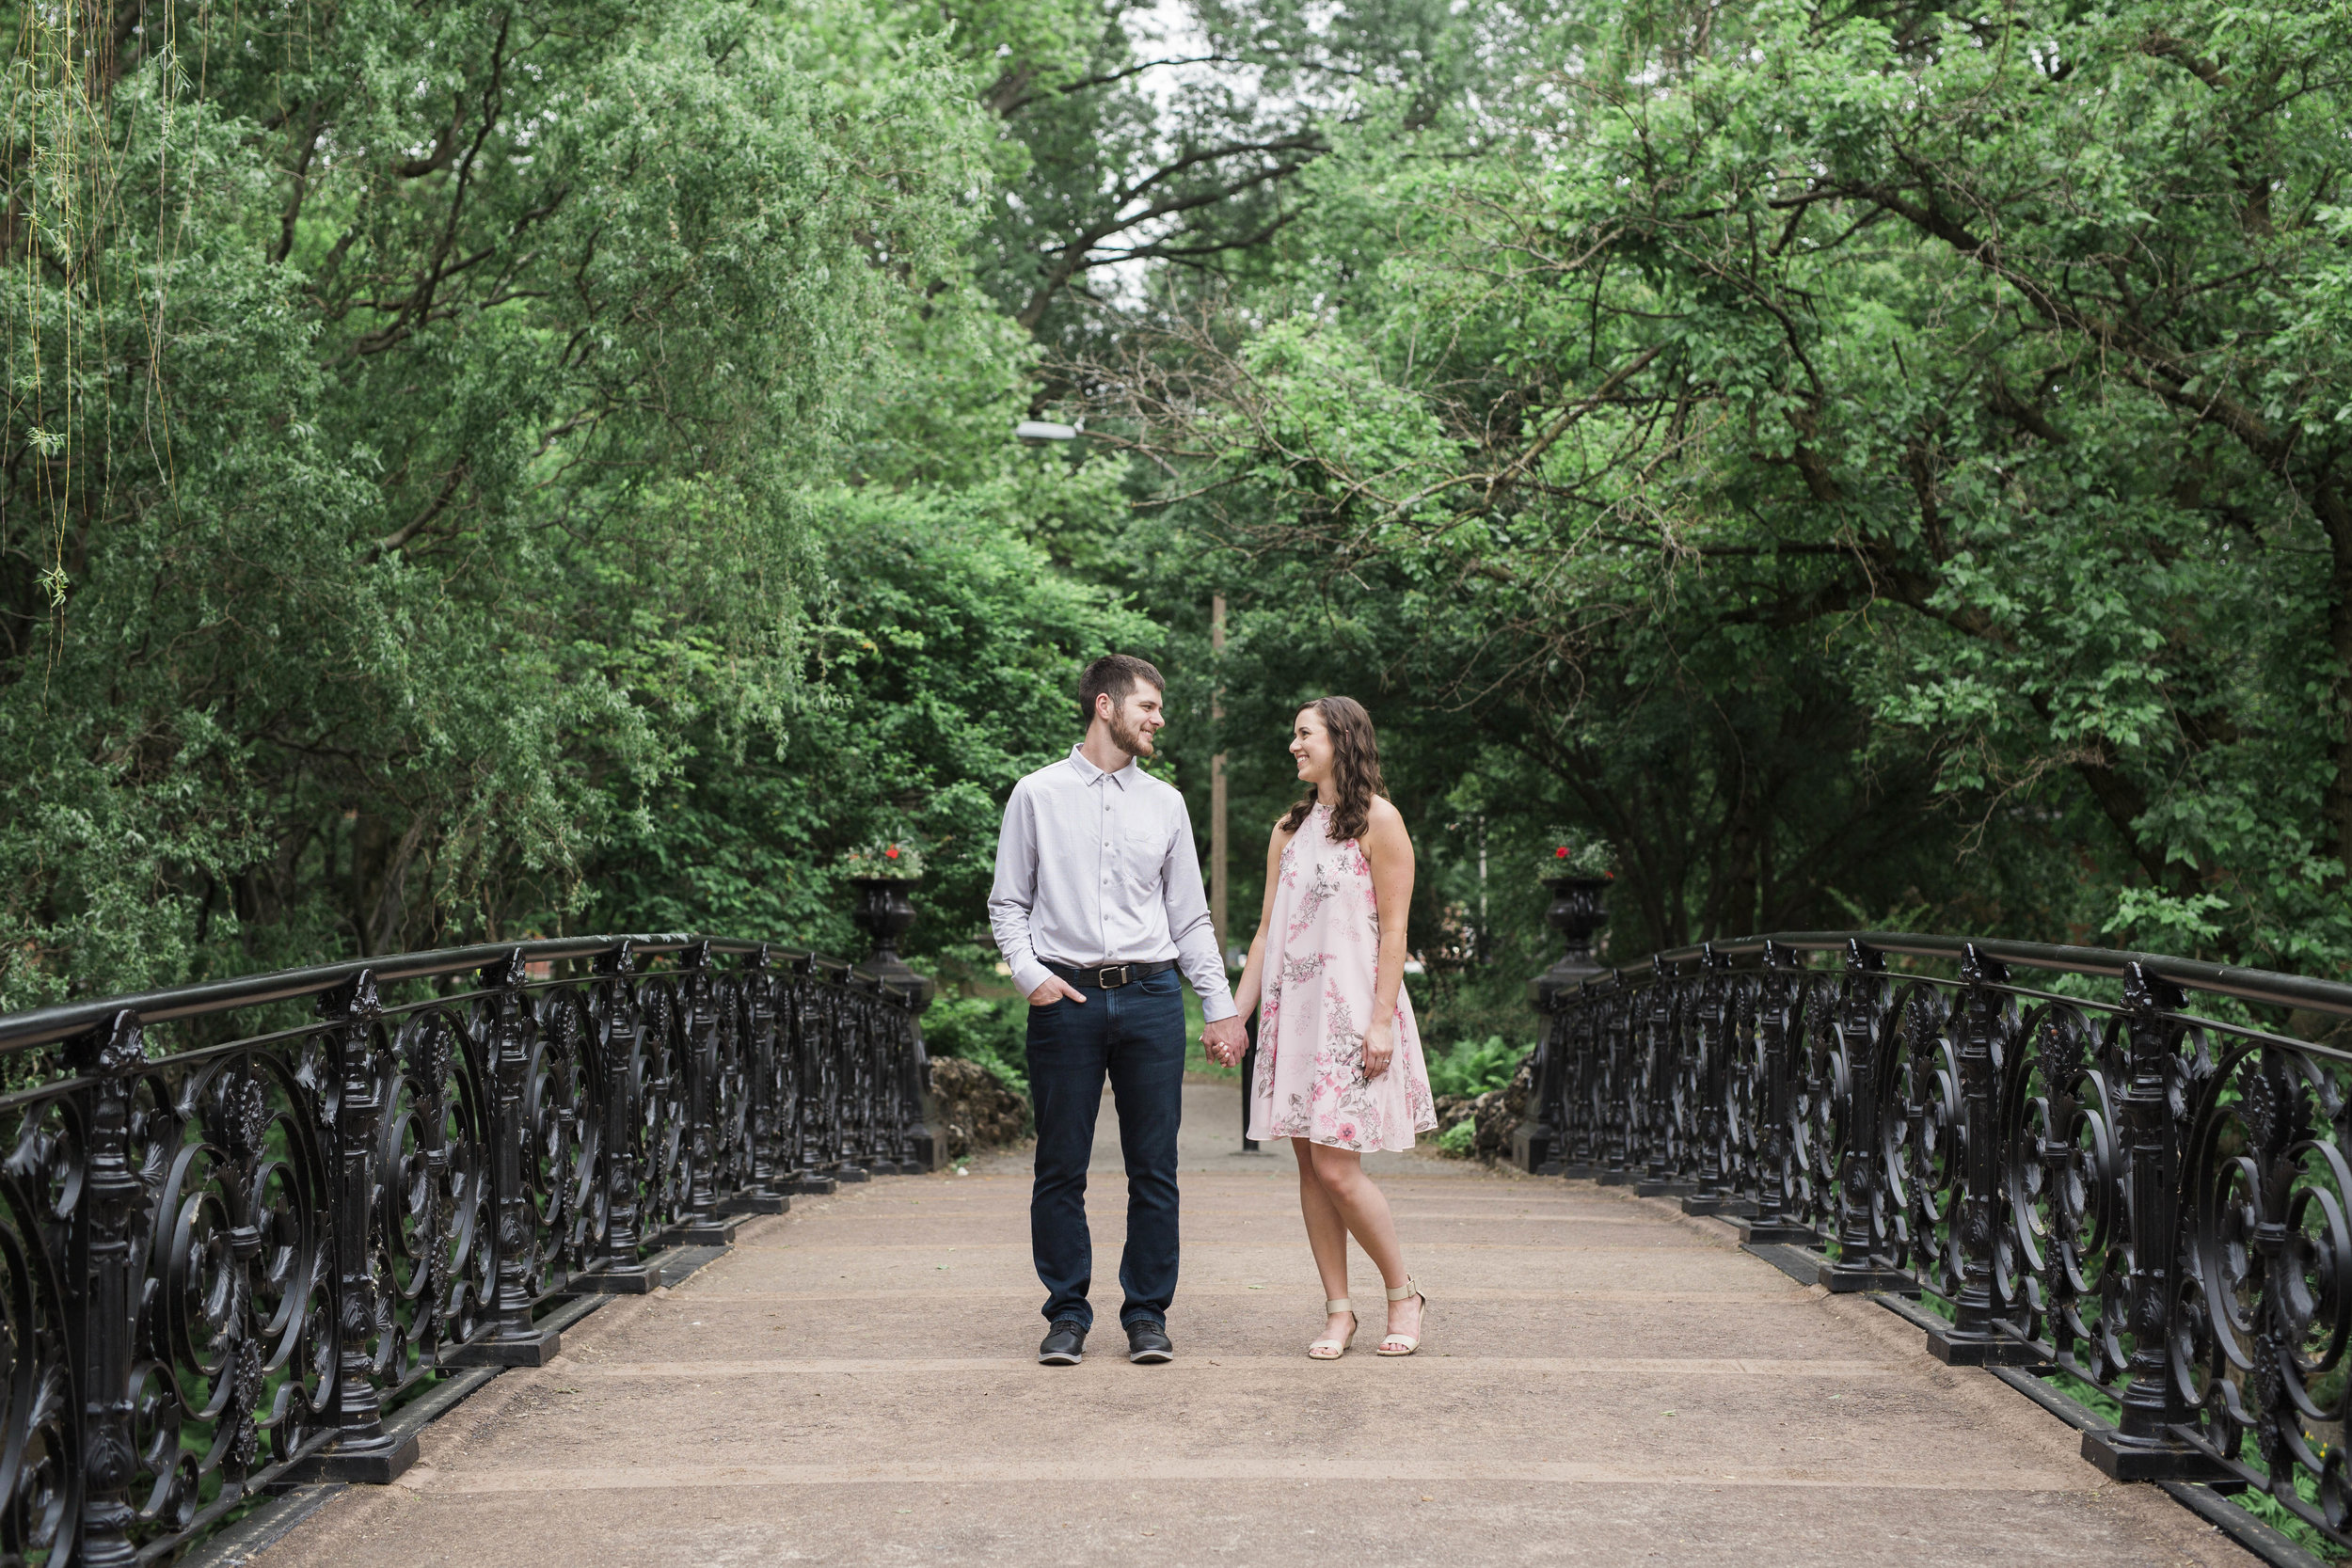 shotbychelsea_stl_engagement_photographer-14.jpg